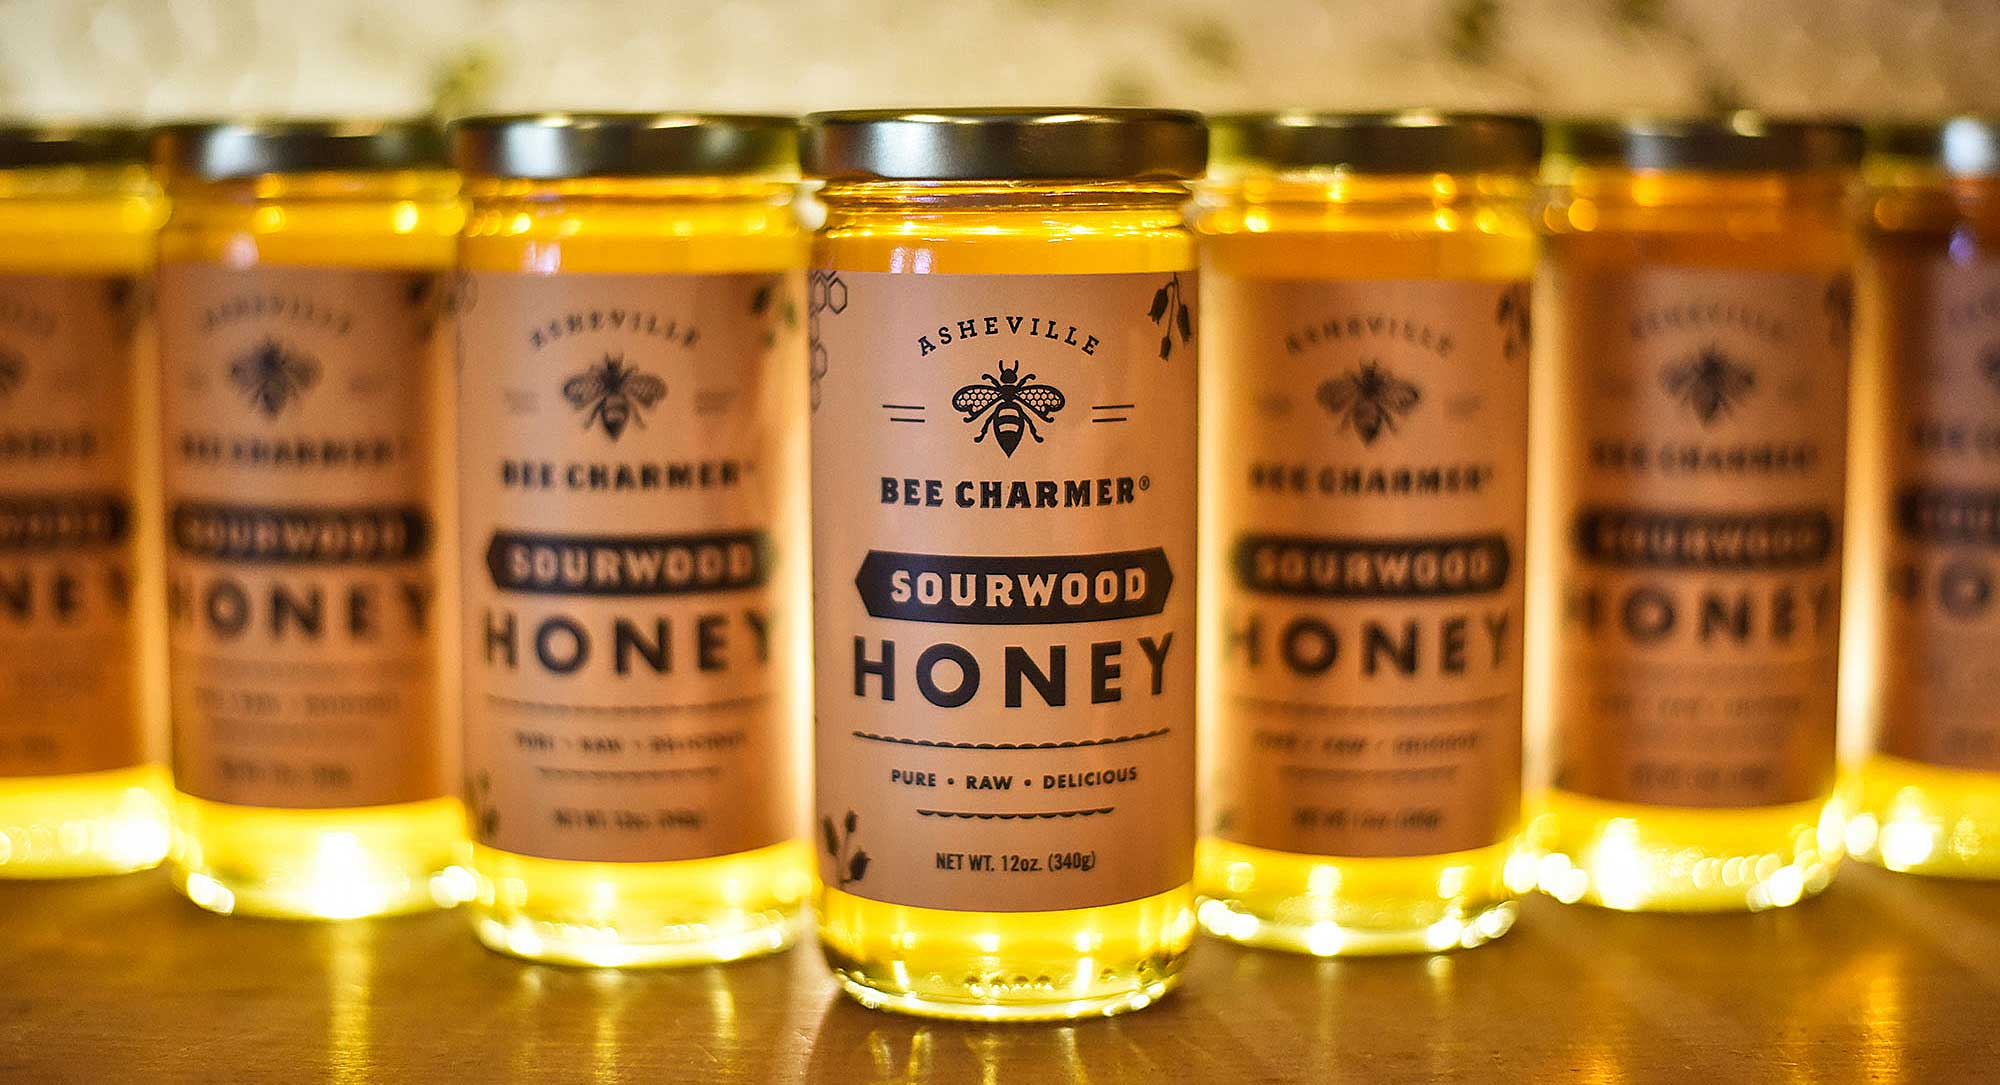 Sourwood honey label design